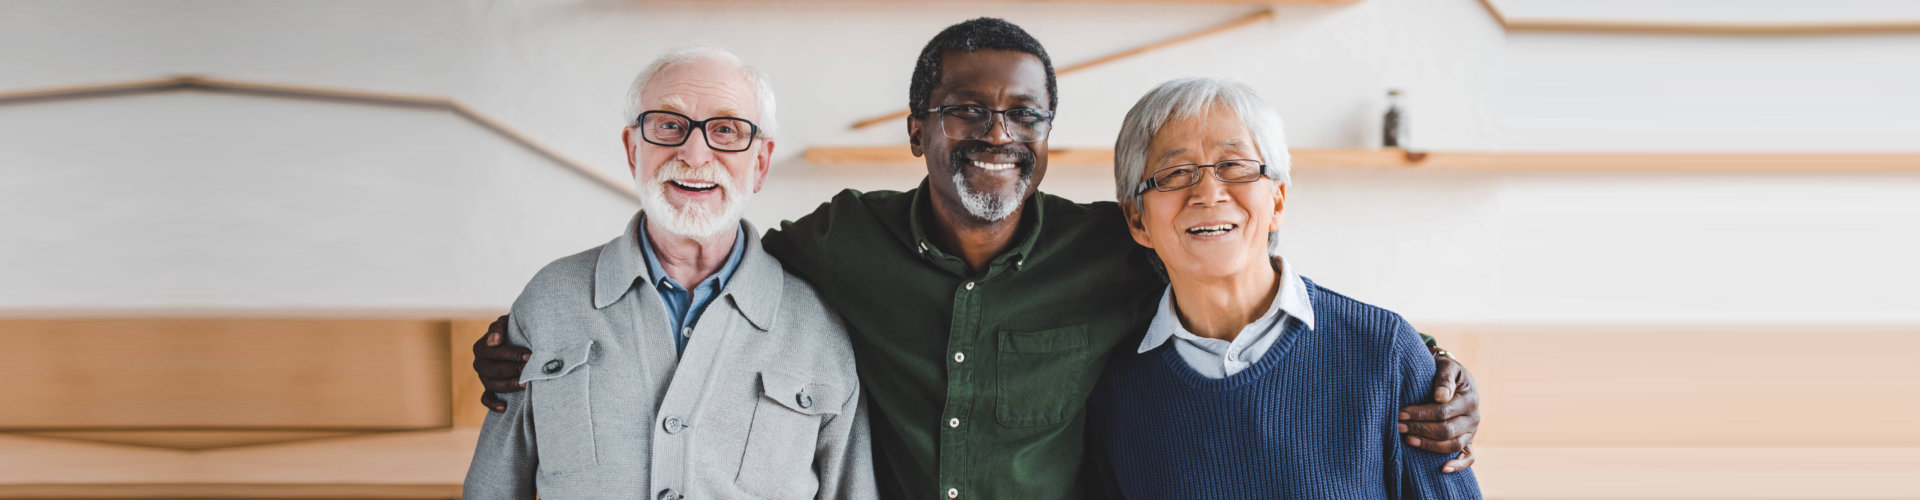 Three men smiling standing side by side